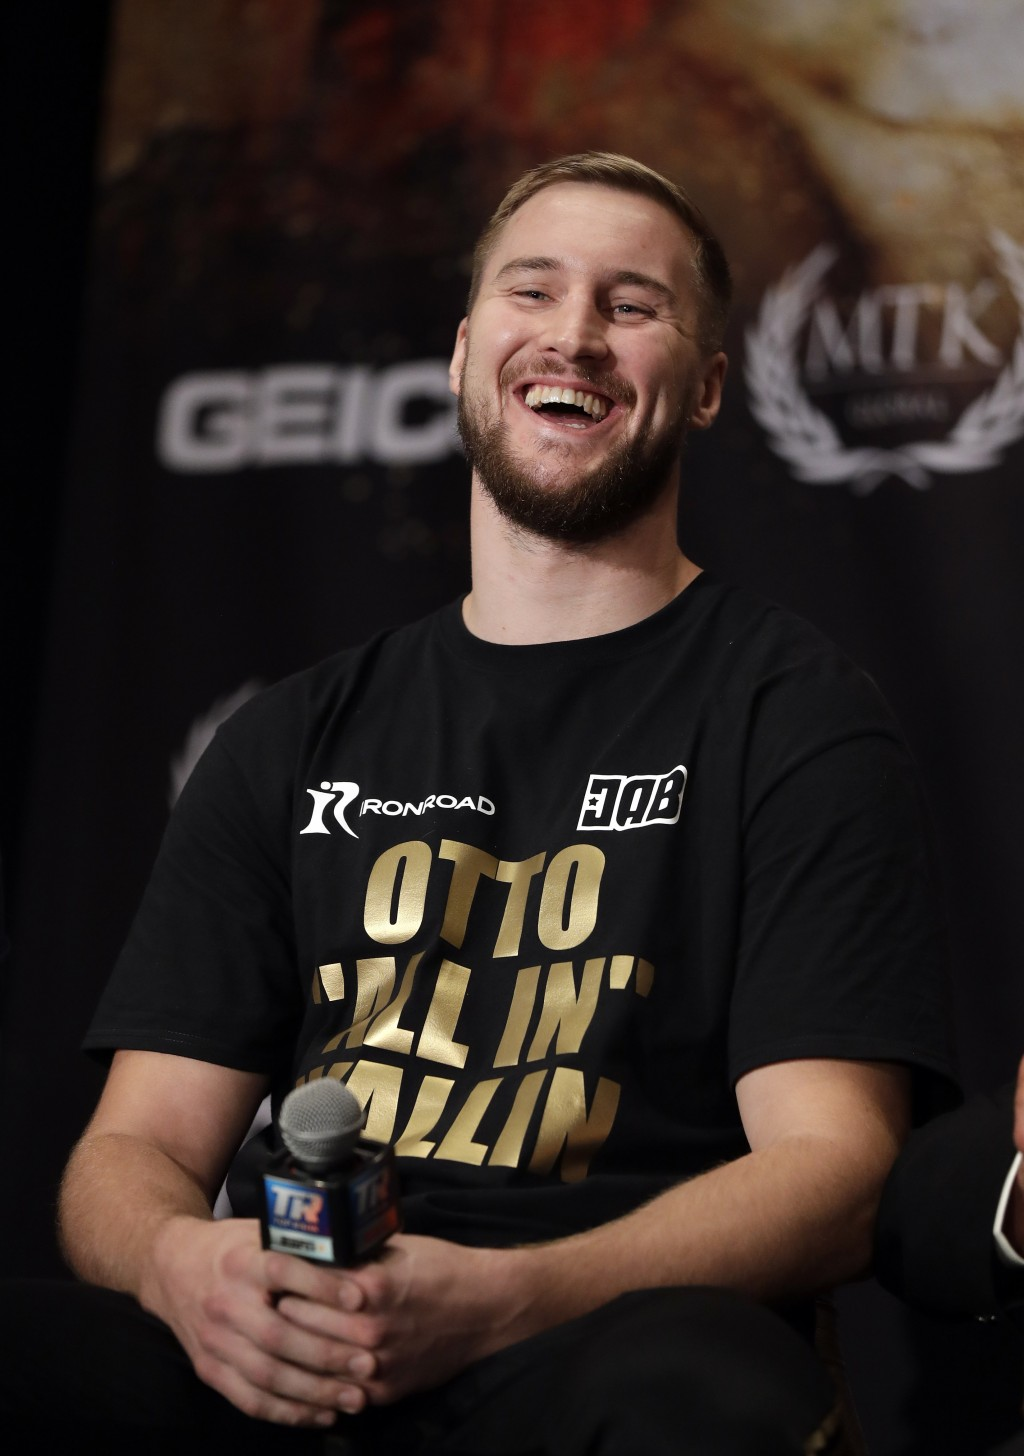 Otto Wallin, of Sweden, laughs during a news conference Wednesday, Sept. 11, 2019, in Las Vegas. Wallin will face Tyson Fury in a heavyweight boxing m